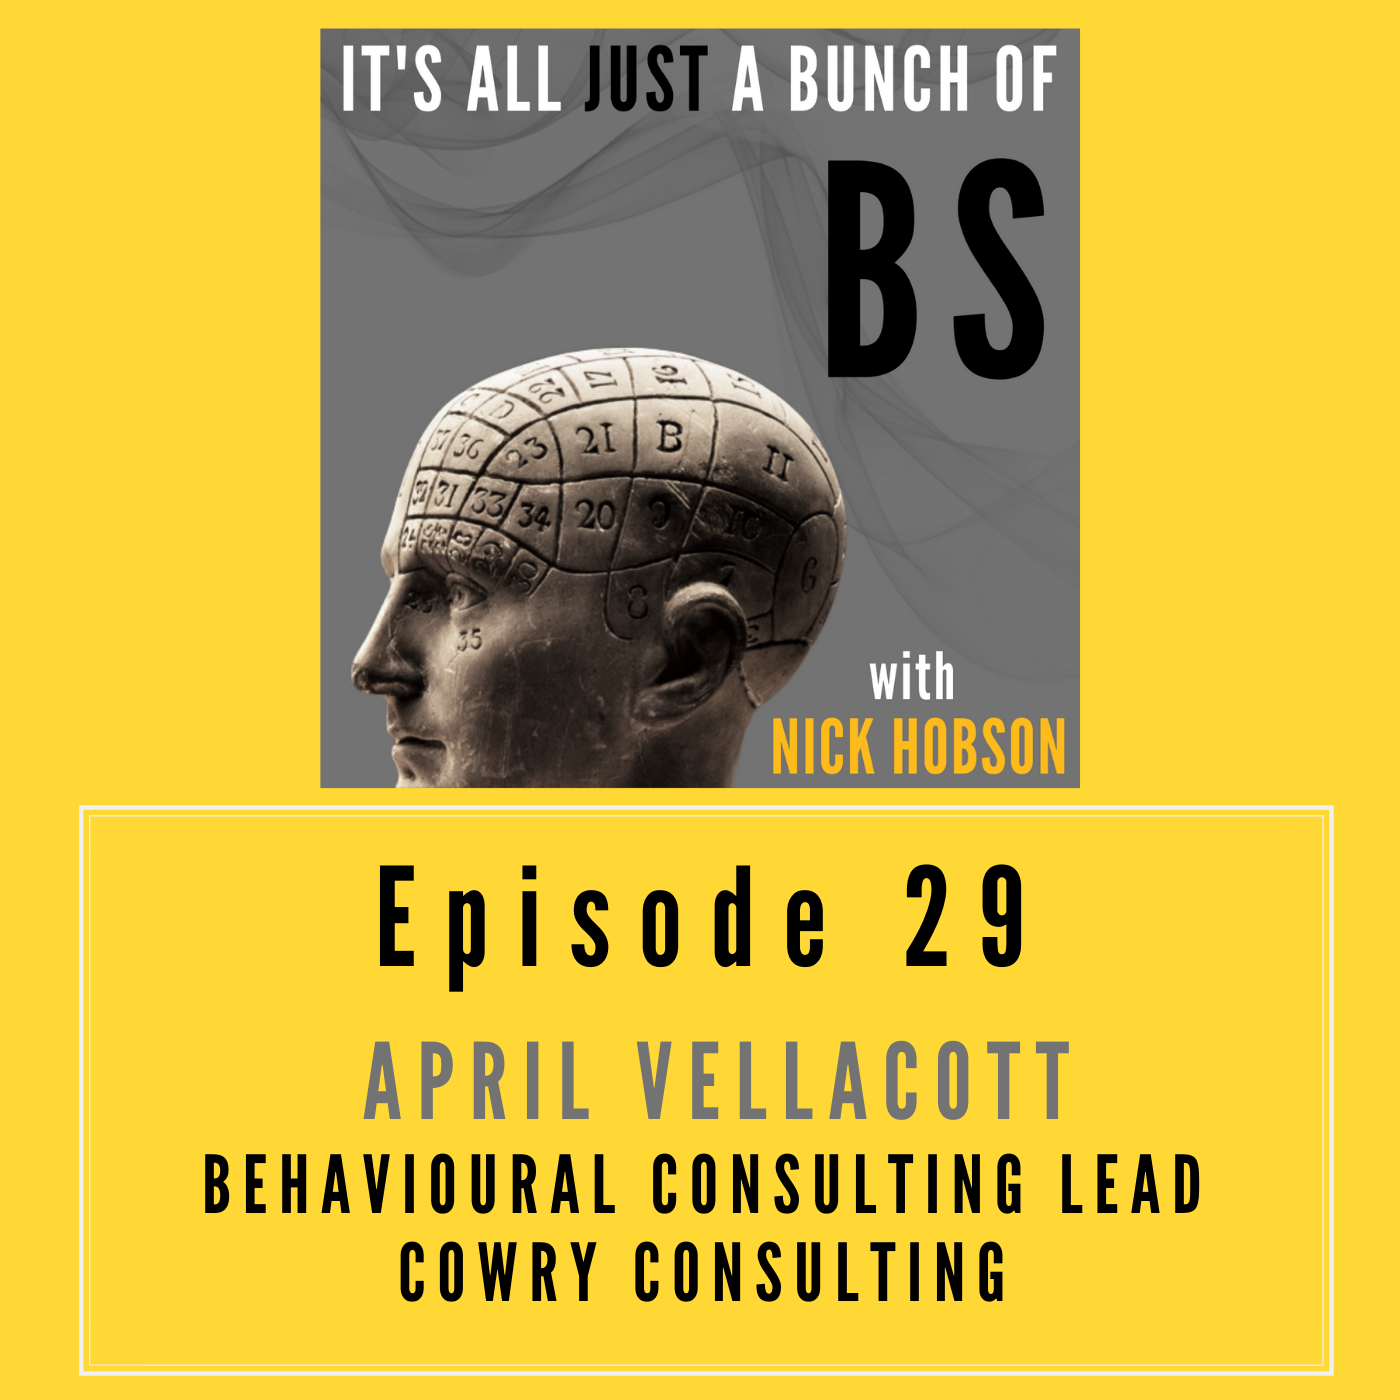 Episode 29 with APRIL VELLACOTT: The Importance of Democratizing (Behavioral) Science